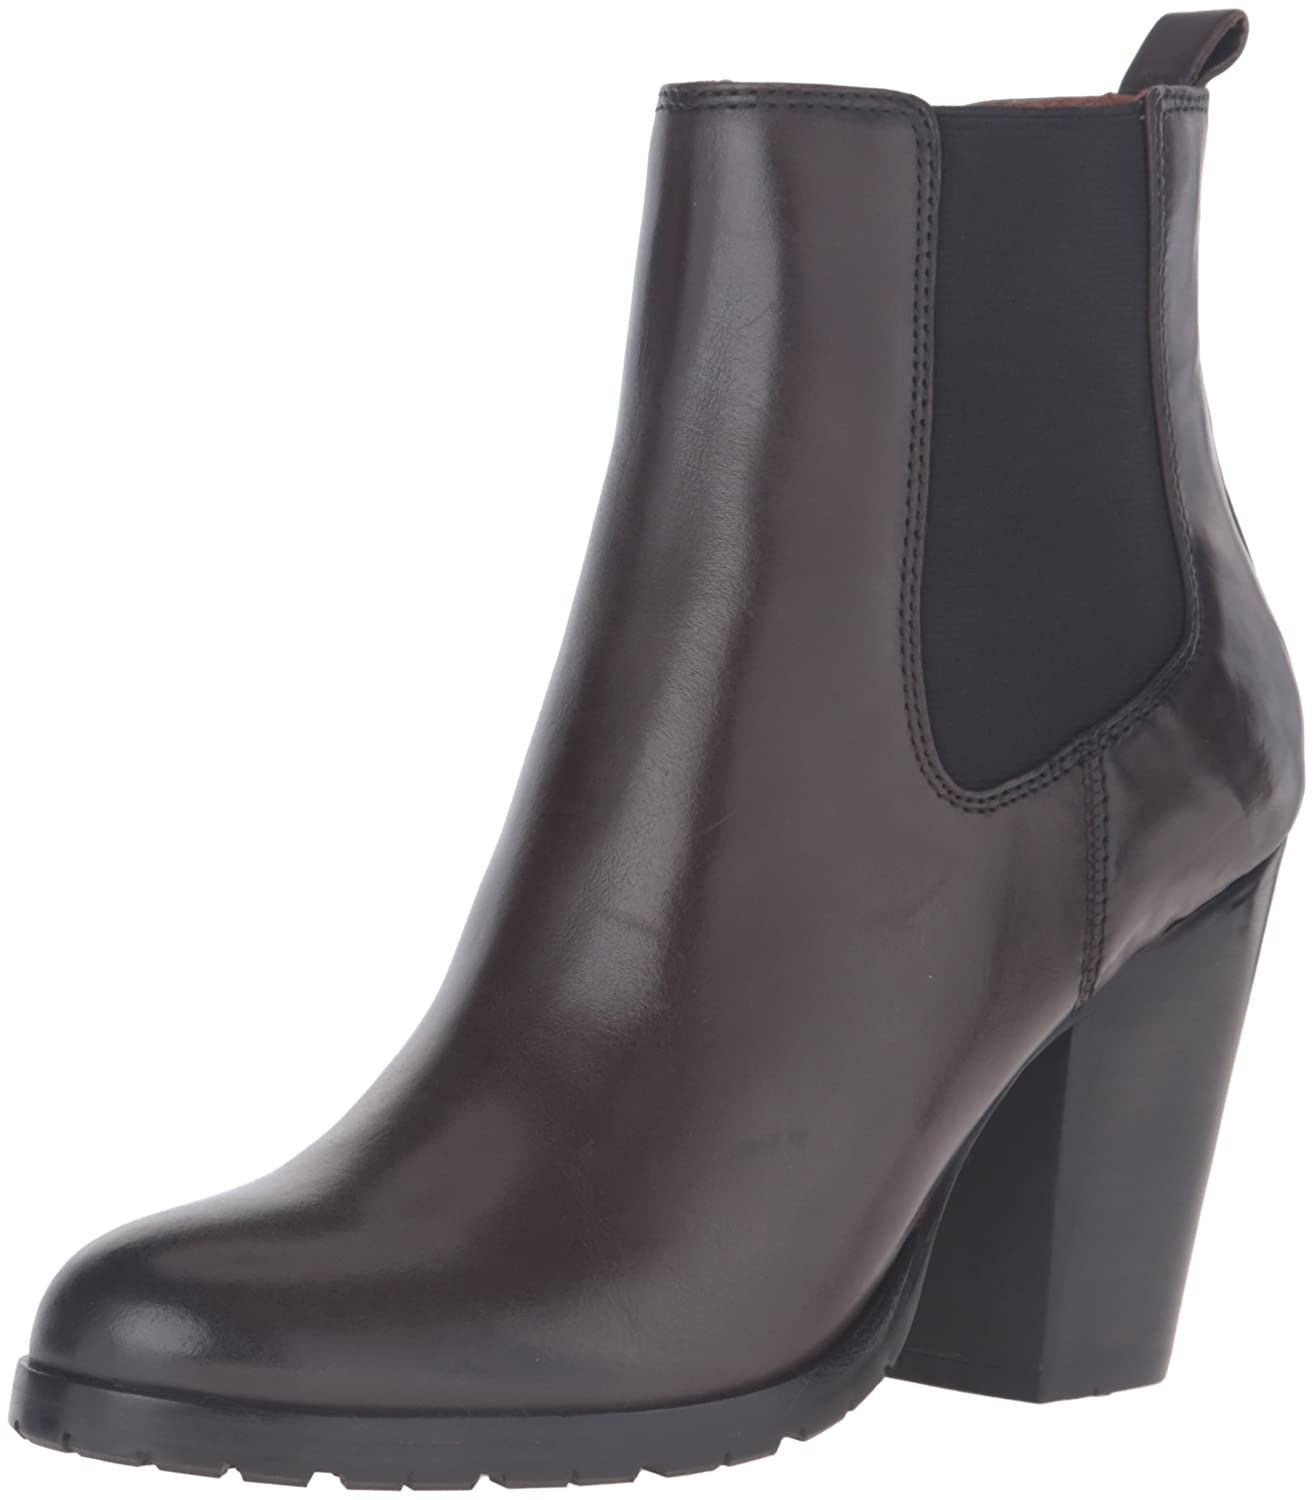 FRYE Women's Tate Chelsea Boot B019457S3S 9 M US|Charcoal